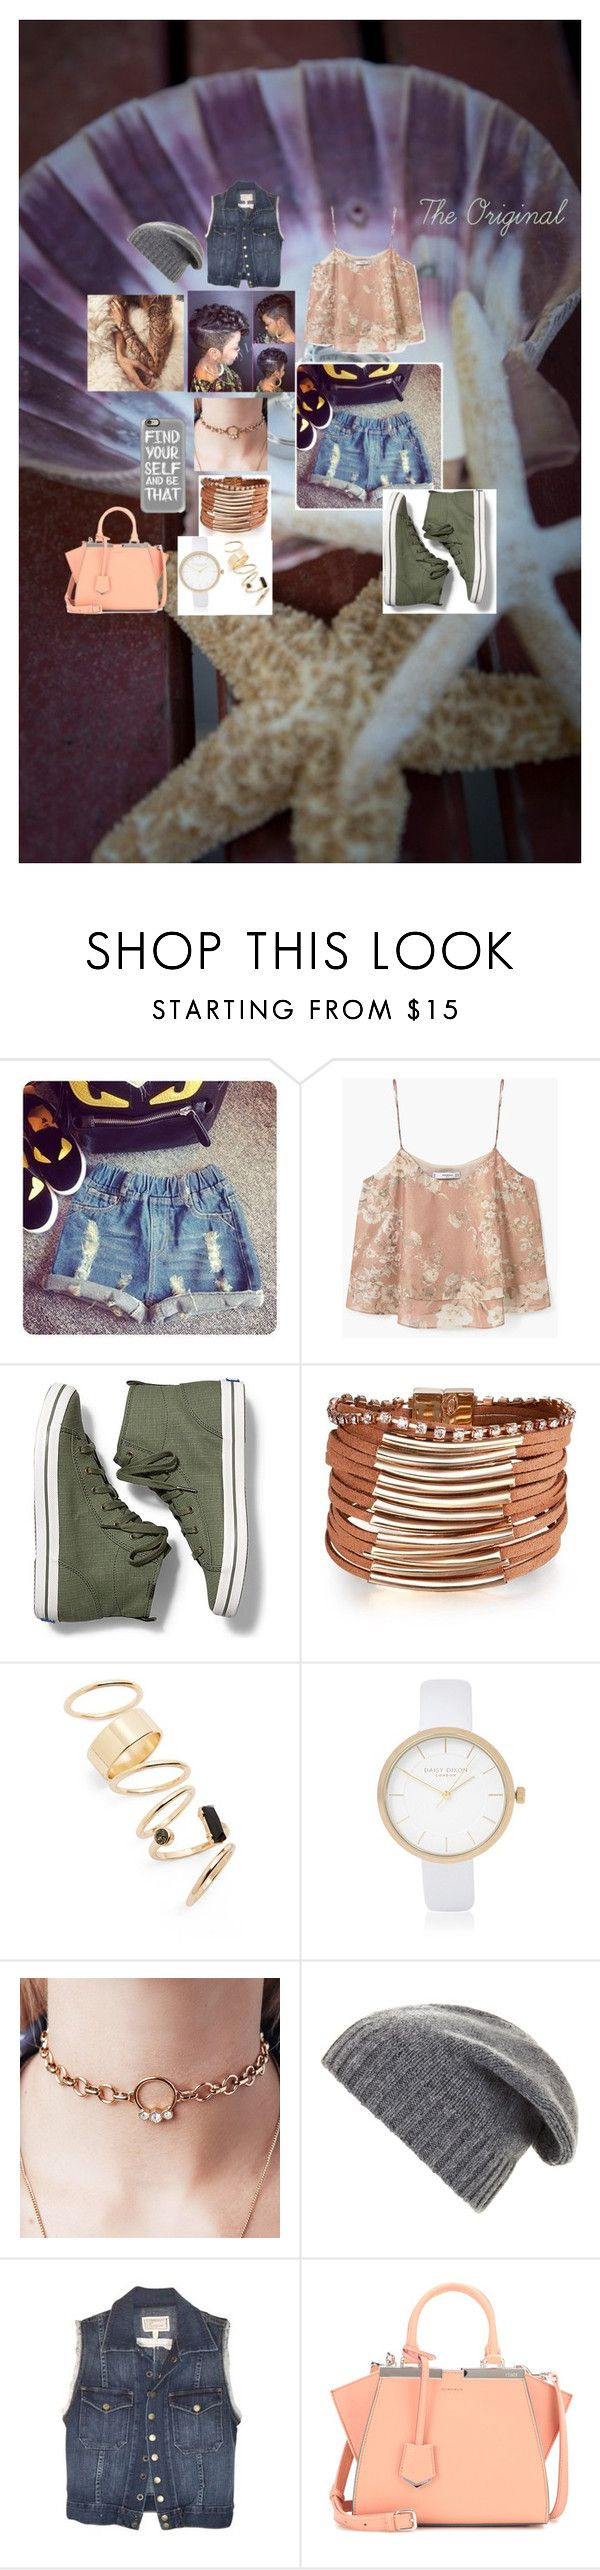 """The Original"" by mstrue on Polyvore featuring MANGO, Keds, BP., River Island, BCBGMAXAZRIA, Current/Elliott, Fendi and Casetify"